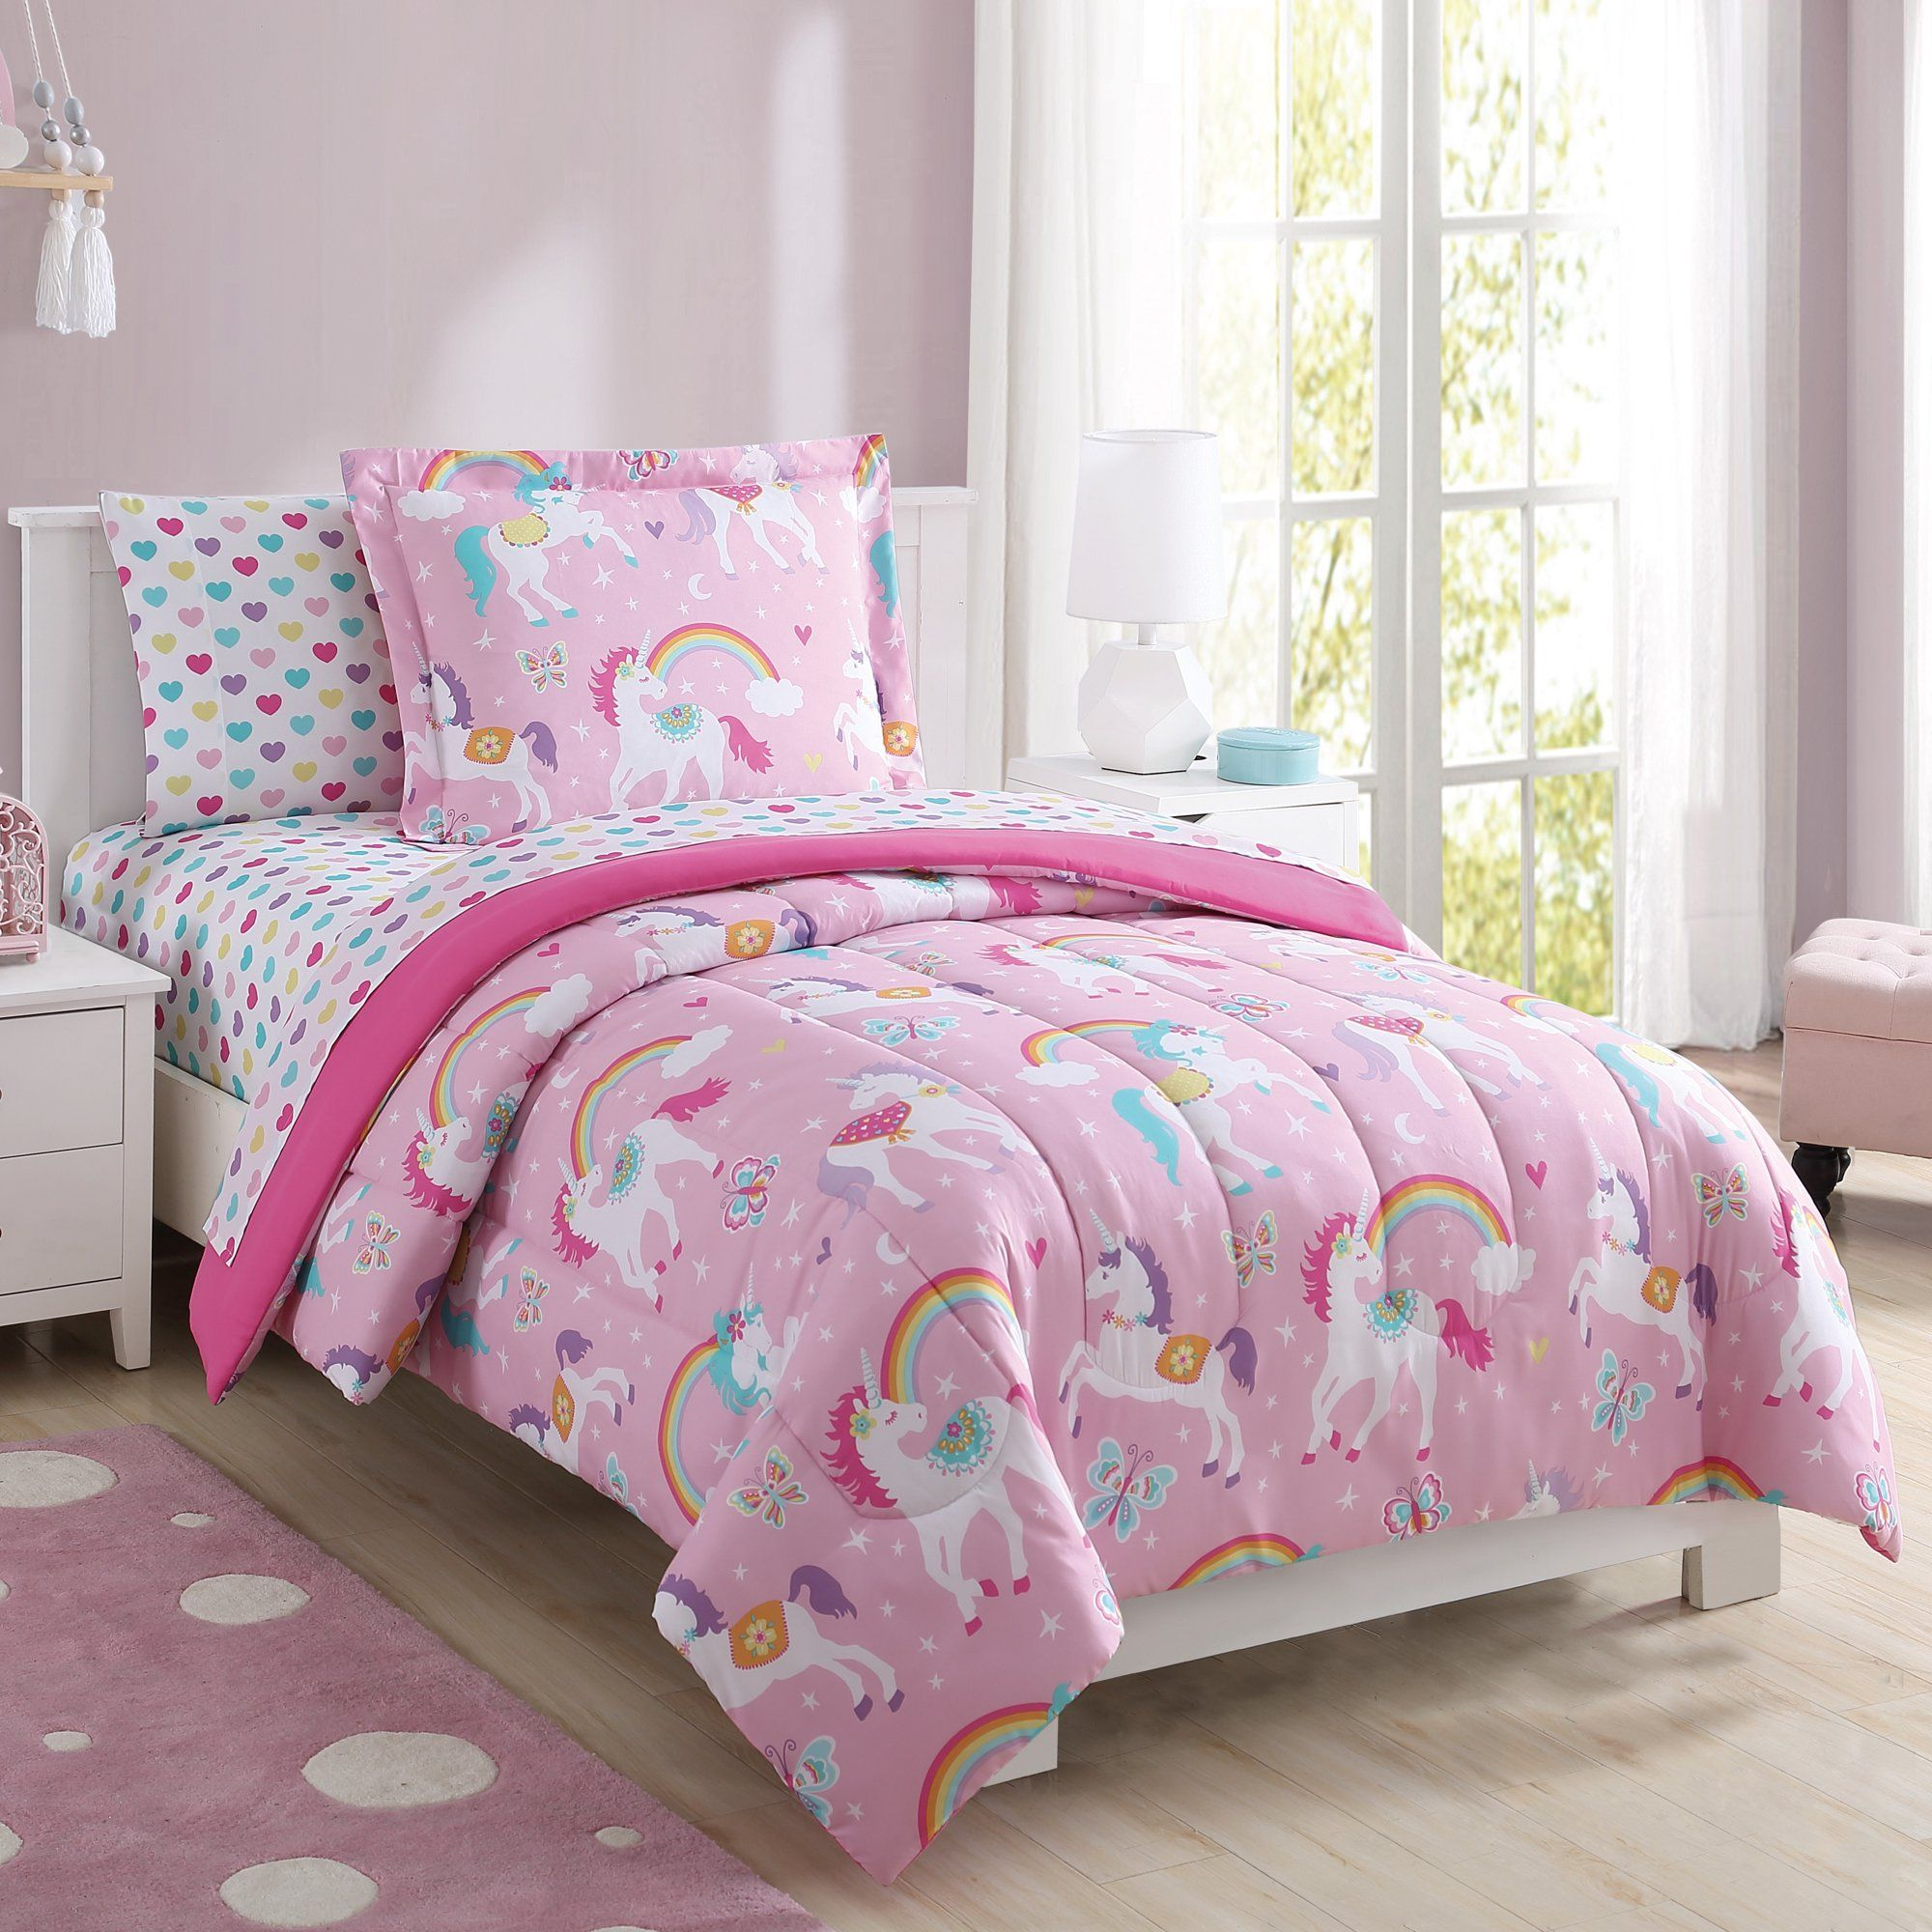 Pin On Bedding Select